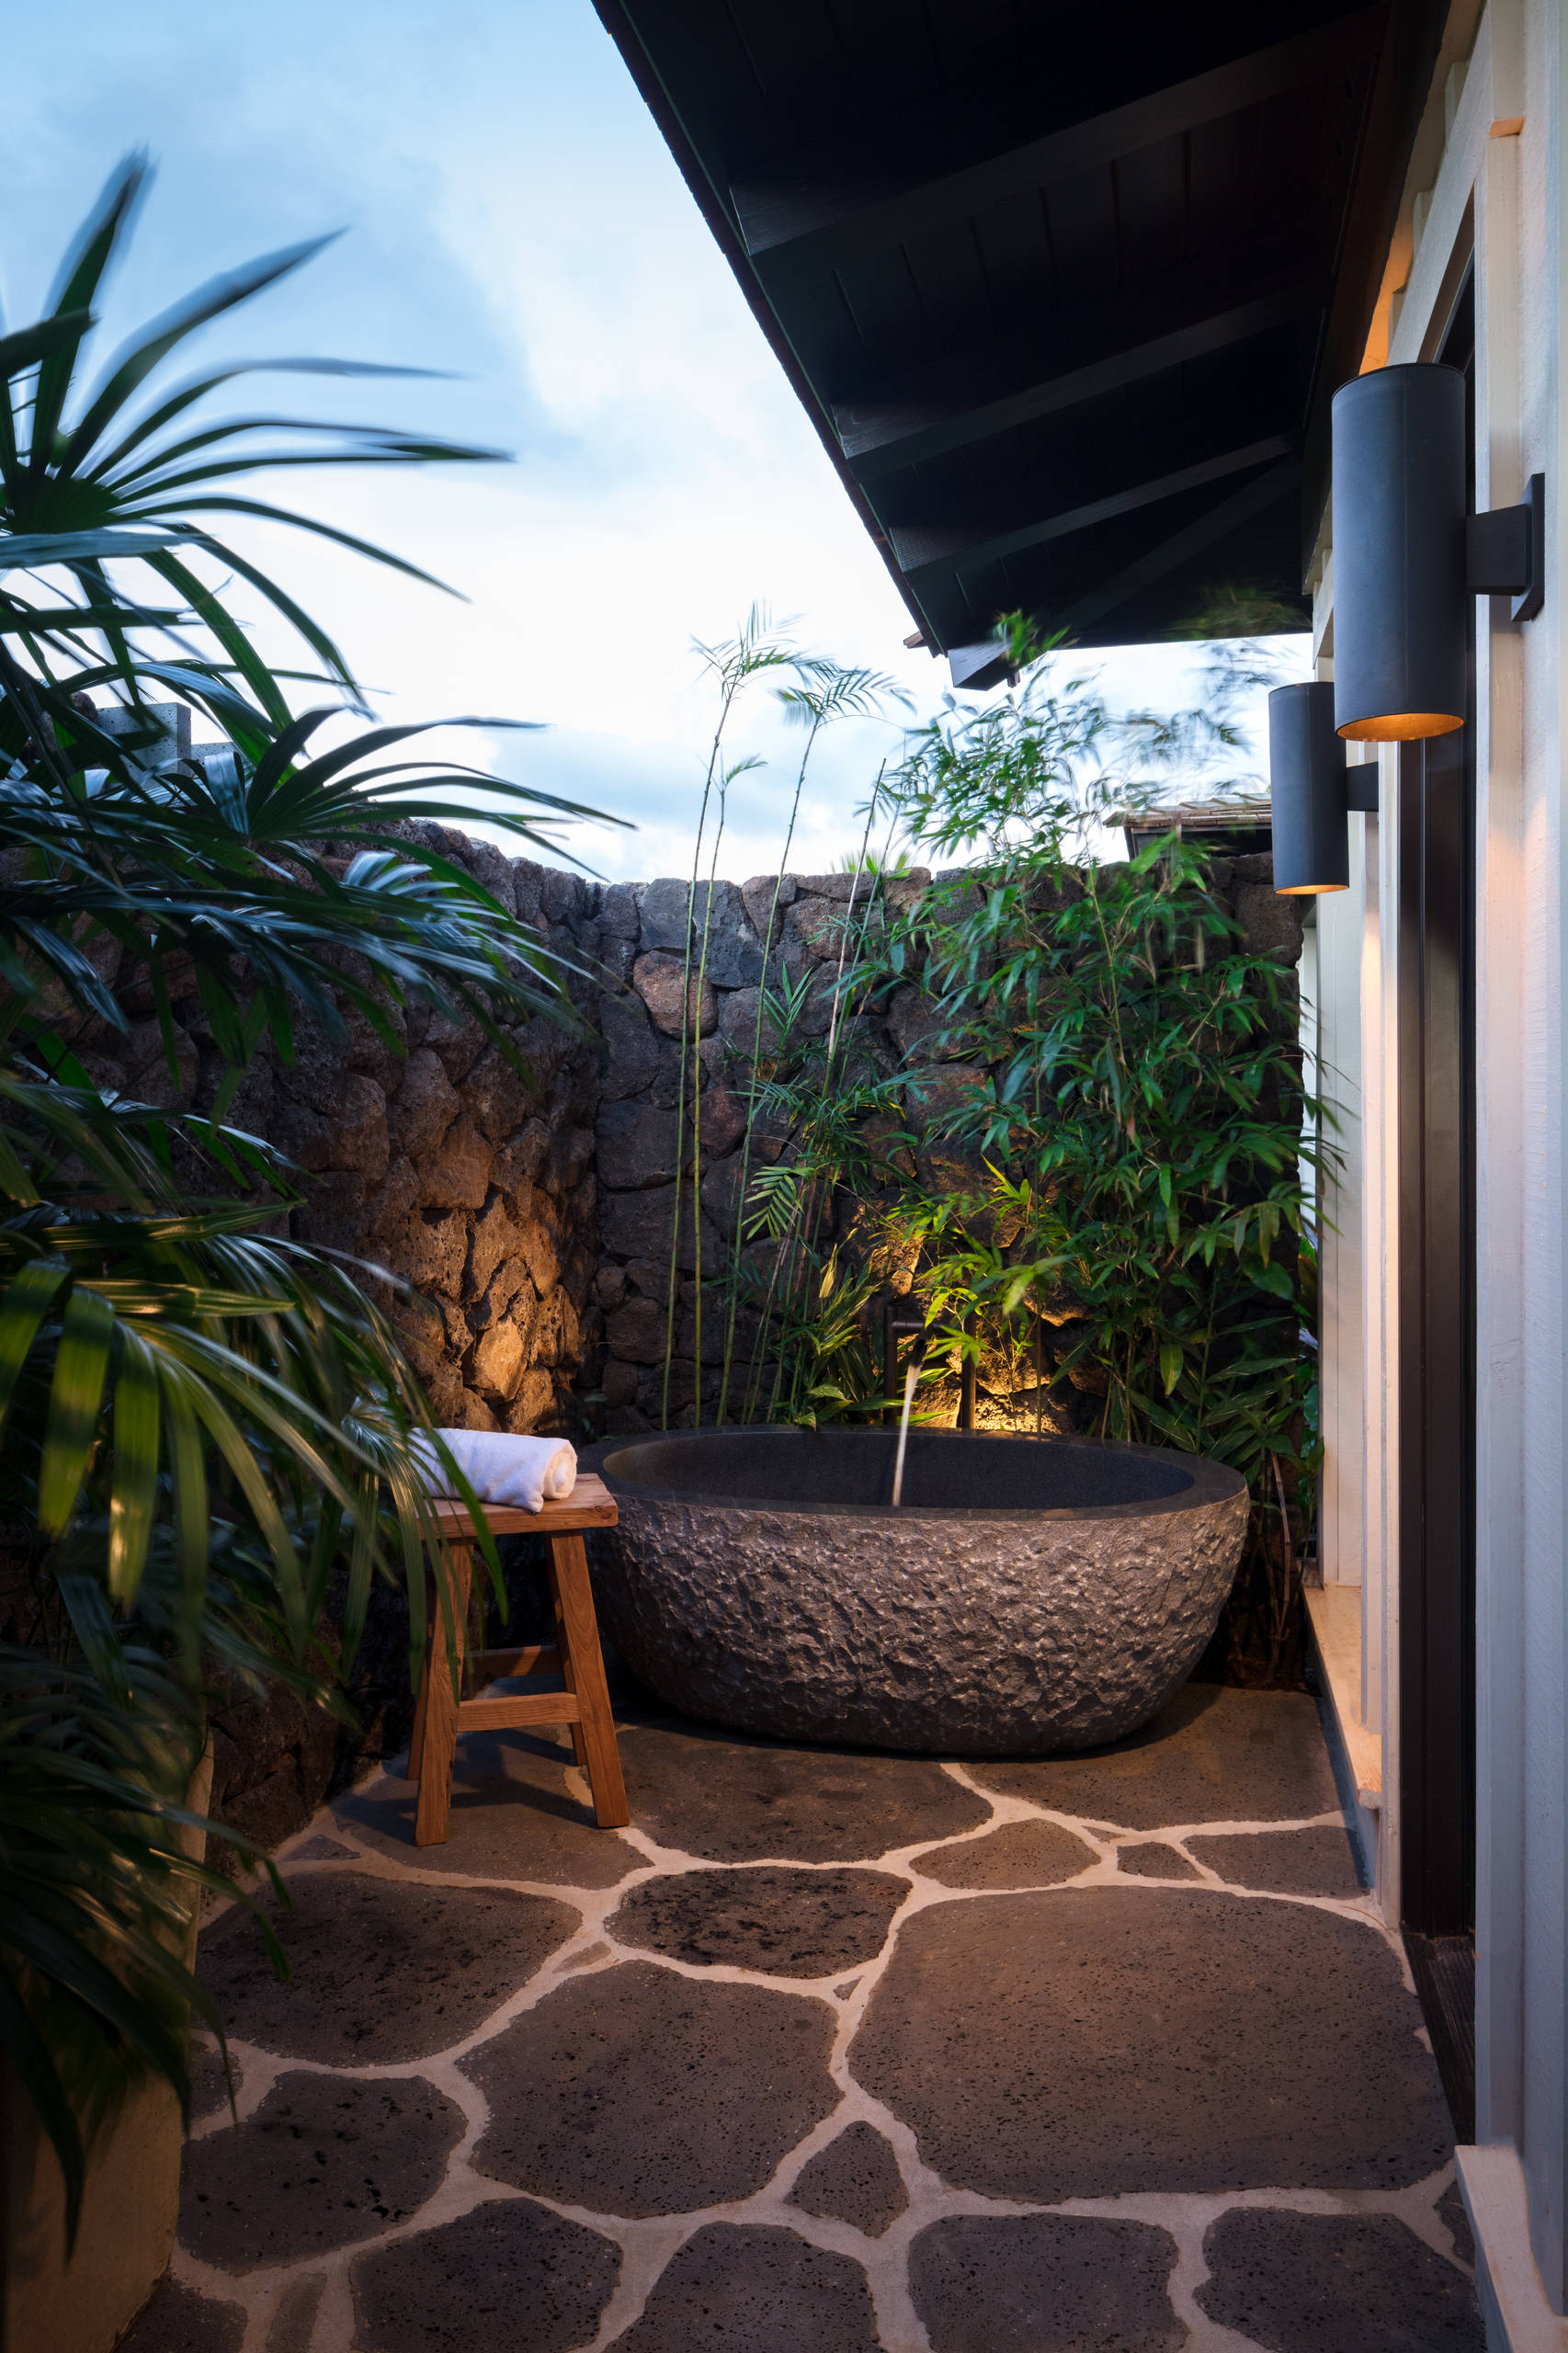 75 Beautiful Tropical Outdoor Design Houzz Pictures Ideas February 2021 Houzz